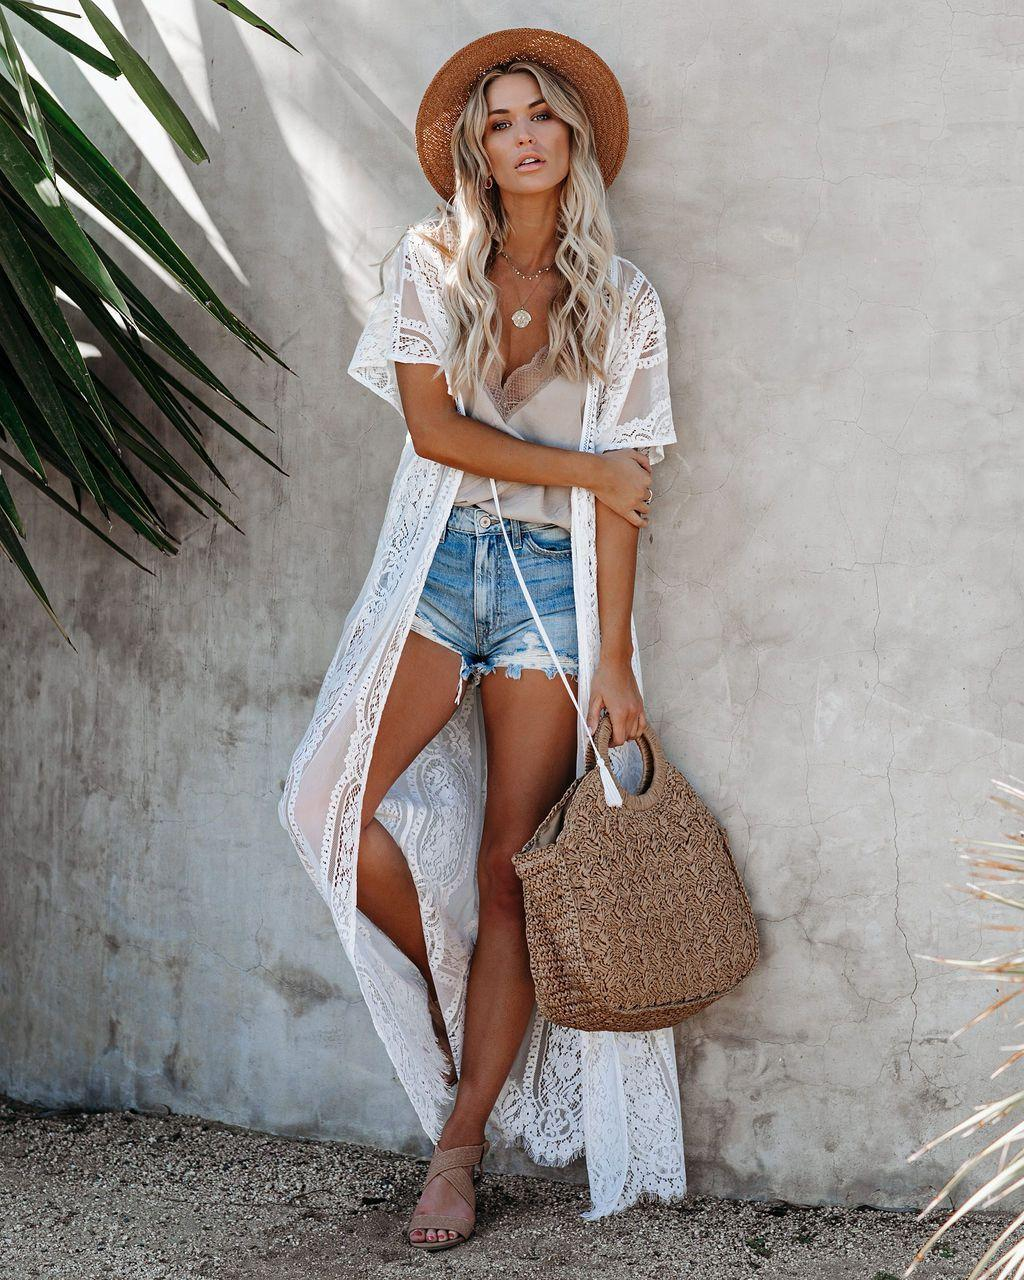 A collection of superb summer feminine looks for a great hot season vacation